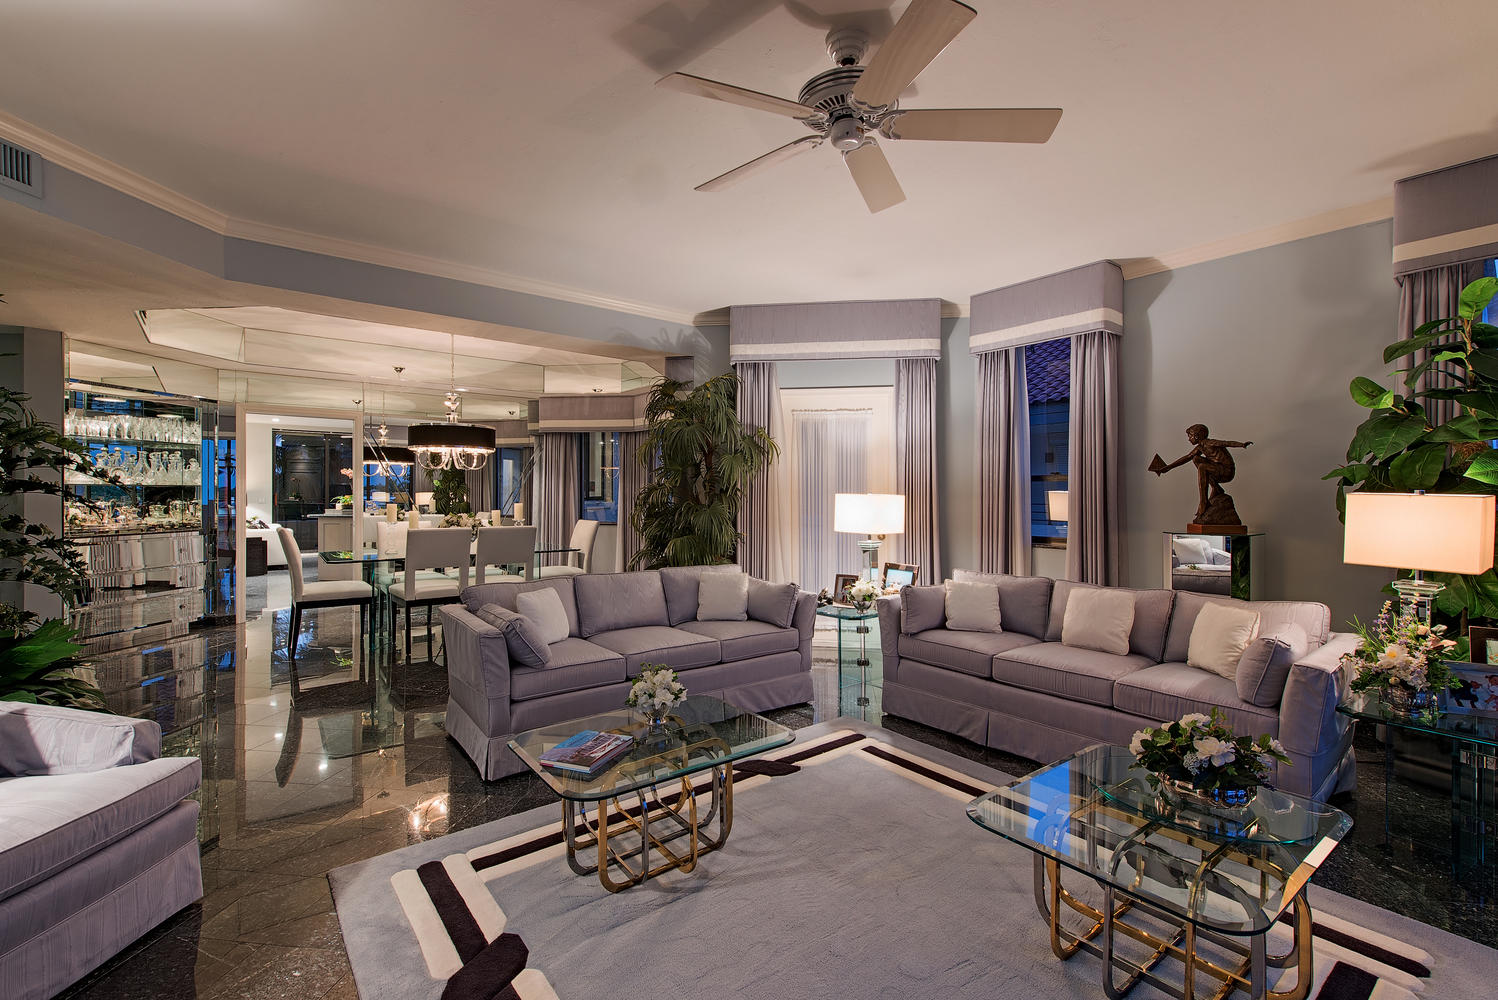 Rarely Available Pent House-large-003-Living  Dining Rooms-1499x1000-72dpi